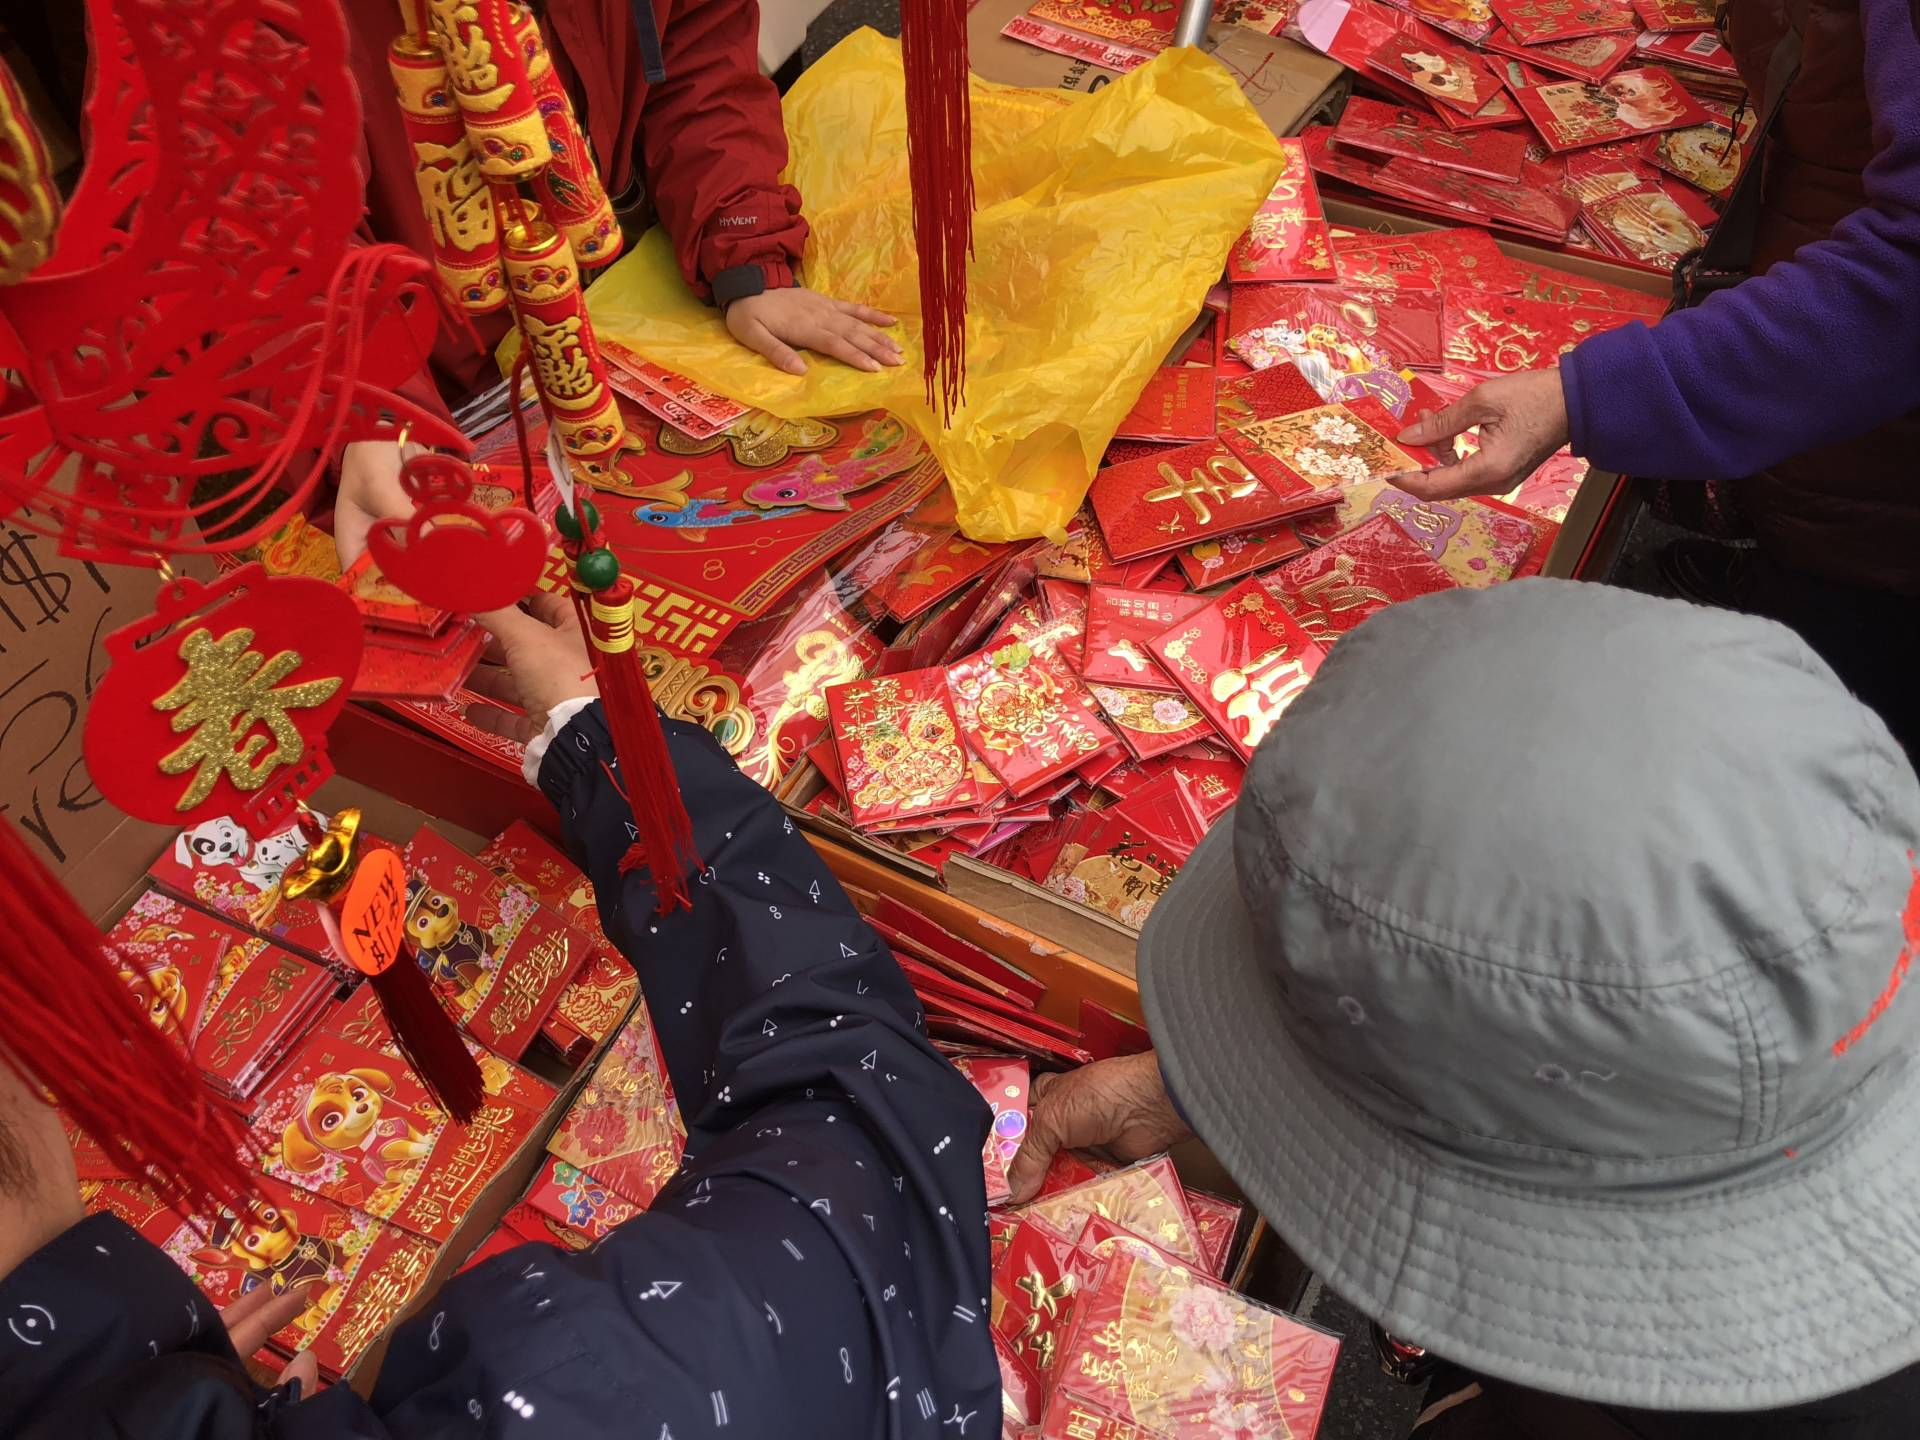 Elderly ladies pick over red envelopes at the Chinese New Year Flower Market Fair. The market is held before Chinese New Year proper in order for people to buy flowers, fruit, candy and plants before the new lunar year. Alyssa Jeong Perry/KQED